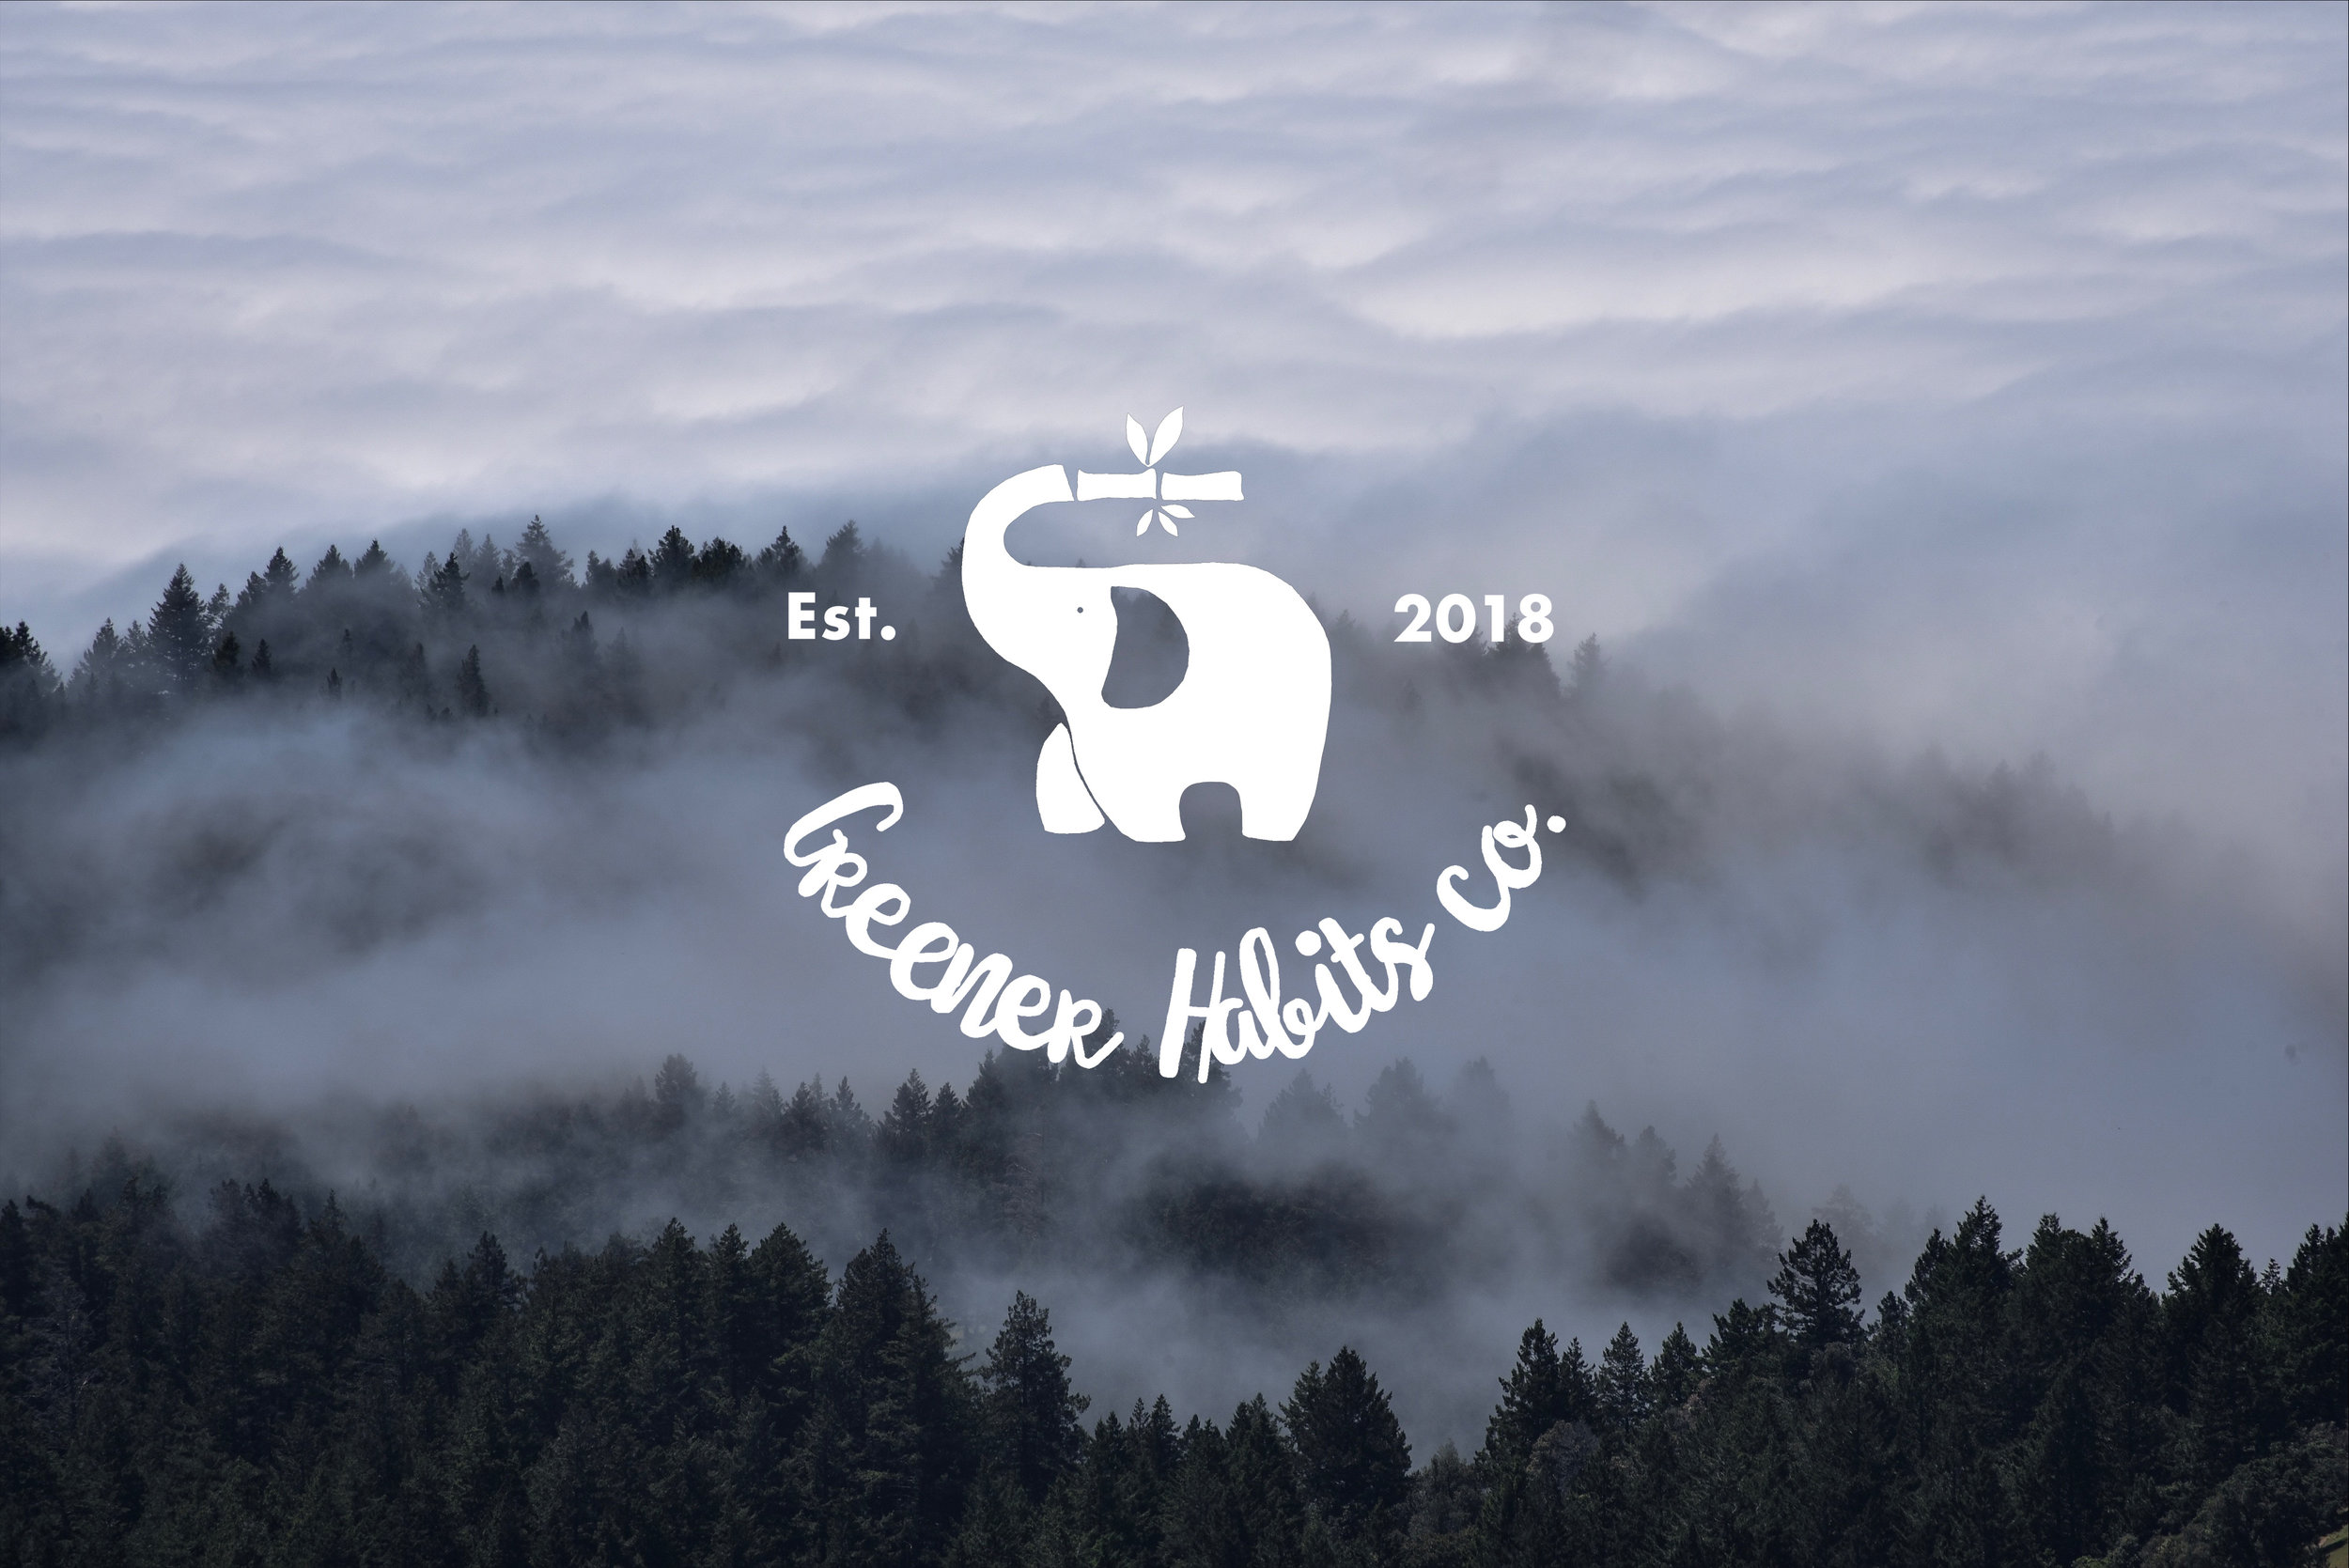 Why Greener Habits Co? - I had this realisation that all I was doing was simply changing habits. For example, we buy plastic toothbrushes, because it's easily available and we always have. It's a habit. The same goes for the use of plastic bags, plastic bottled shower gels, bottled water and even eating animal products- they are all habits. However, it isn't always easy to find any alternatives to these plastic filled items, and so I decided I wanted to do something about that. It isn't always easy to find vegan friendly products either. That's when the idea of Greener Habits Co. was born early this year, from my tiny little windowless room in London with my equally tiny little doglit Khaleesi.At Greener Habits Co. we truly believe that all lives matter equally, and no product that we use should cause harm to the environment, or any living being, including humans too. I hope, through Greener Habits Co., to help others access planet friendly, cruelty and plastic free alternatives to everyday items. Switching old habits, to new Greener Habits.I am especially excited to be able to use this opportunity to support the incredible Friend Farm Animal SanctuaryEvery item purchased helps support the animals in this wonderful sanctuary based in Kent, Uk.This is a self funded start up, which only works with ethical companies that share my values, putting the planet, animals and people first.I'm so excited to share this with you all, and hopefully you'll love all the products as much as I do. Lets save the planet one habit at a time.Love,Hannah & Khaleesi